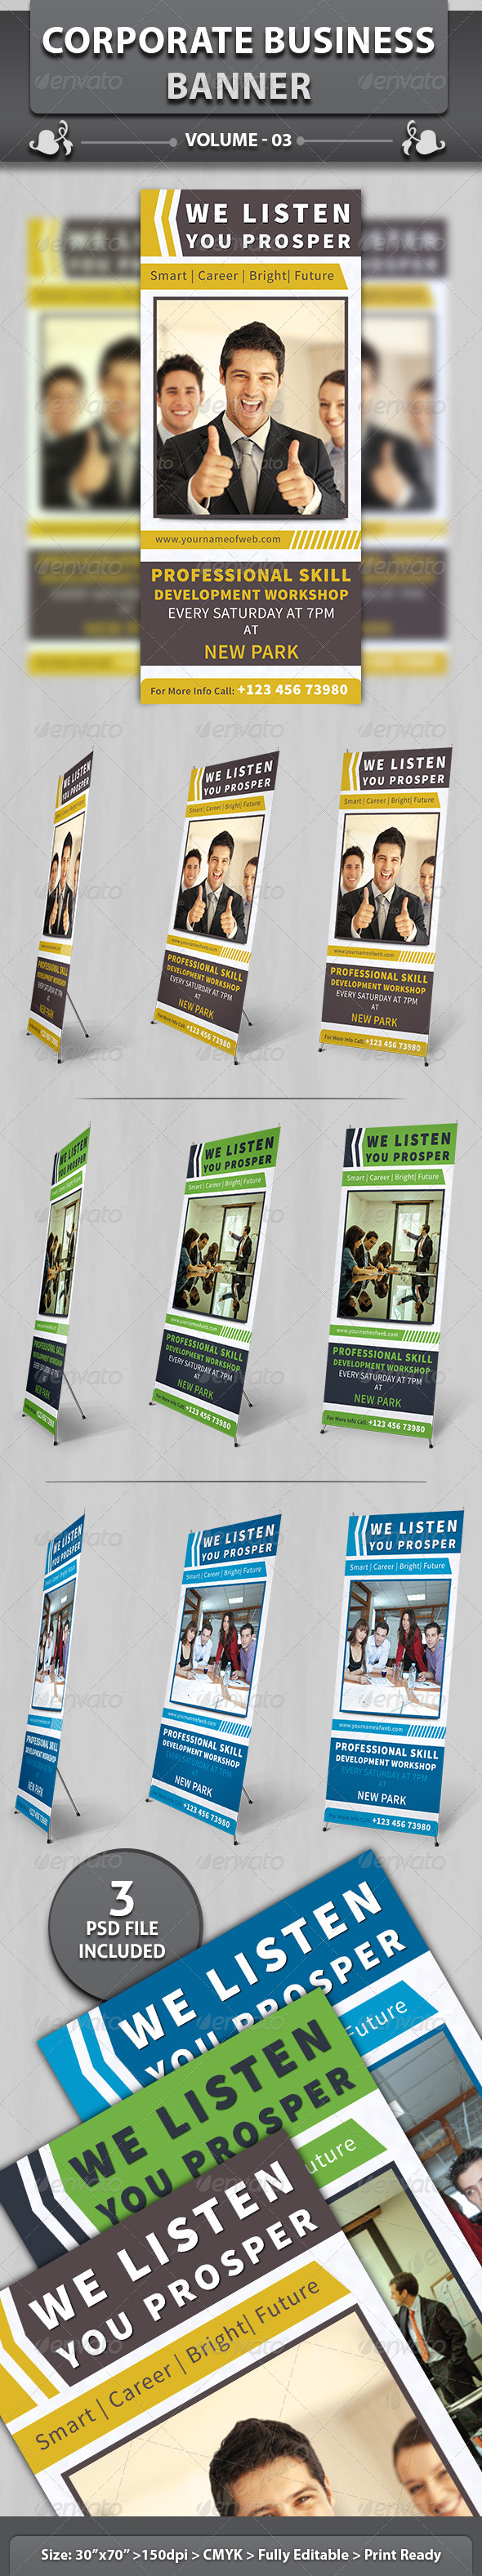 Corporate Business Banner Volume 2